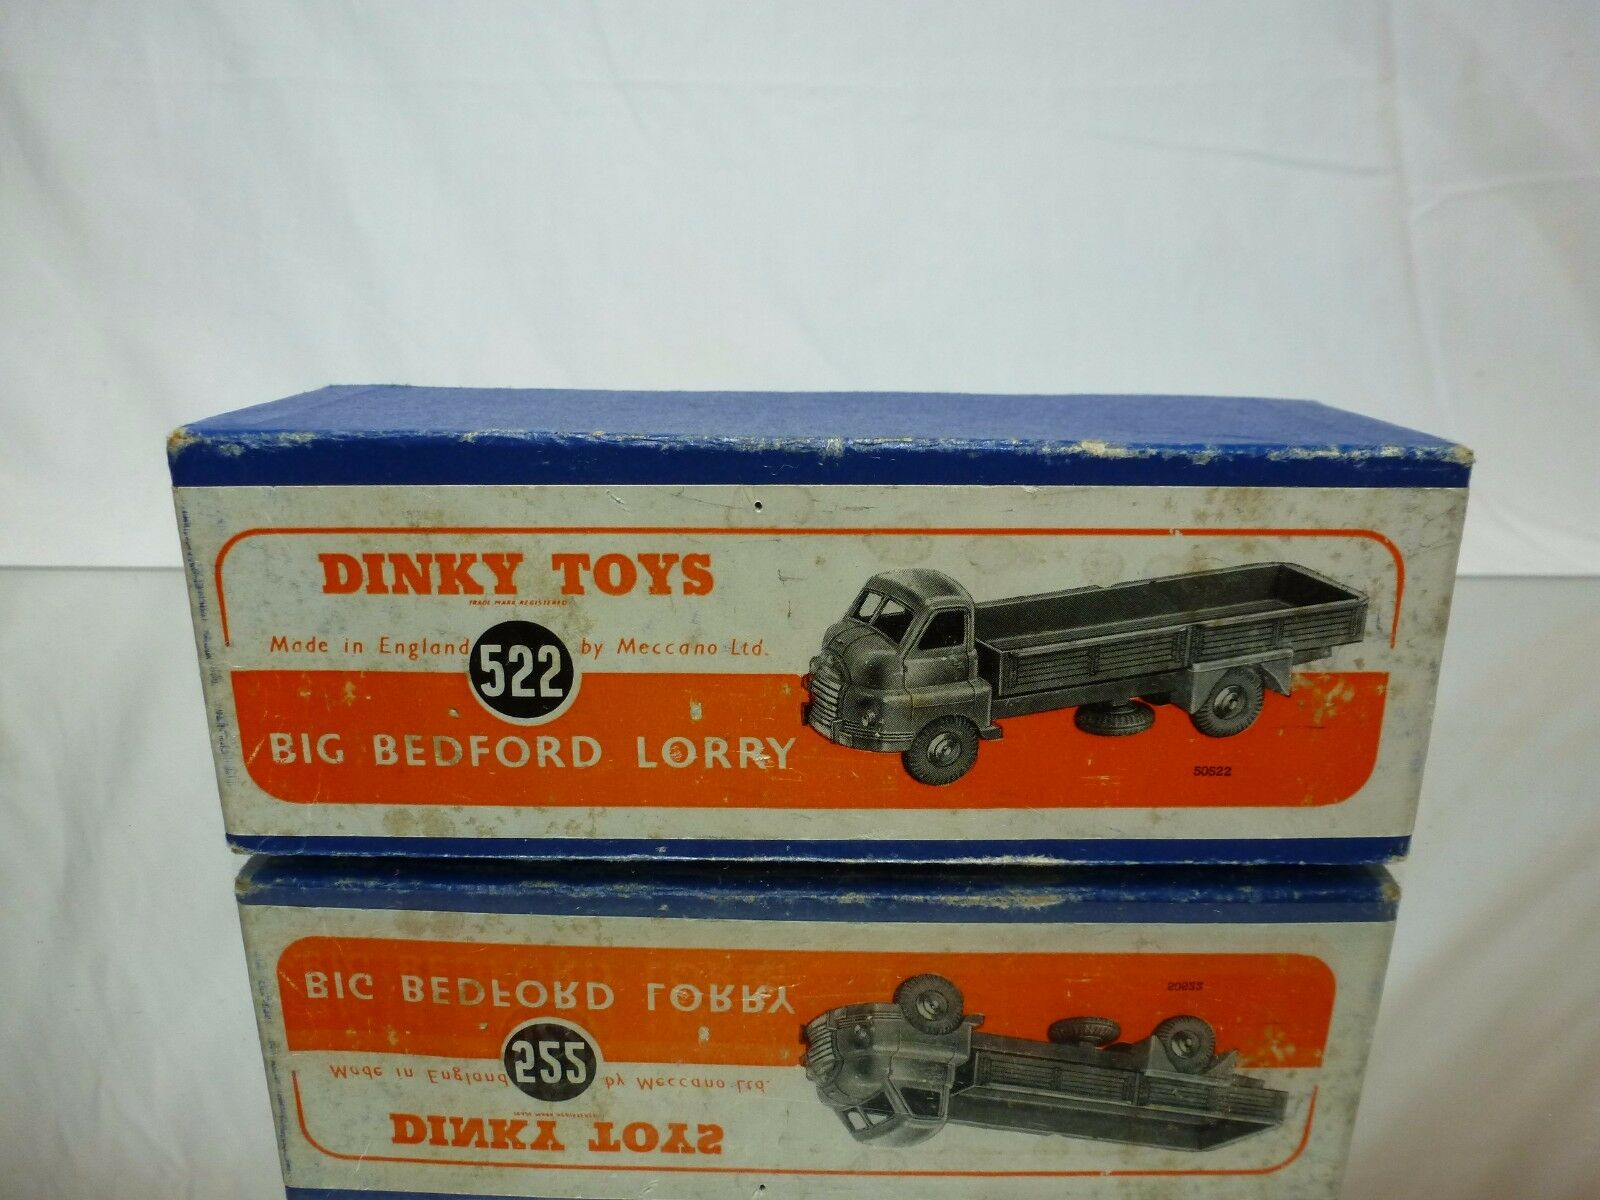 DINKY TOYS 522 ORIGINAL BOX for BIG BEDFORD LORRY - blueeE - ONLY BOX